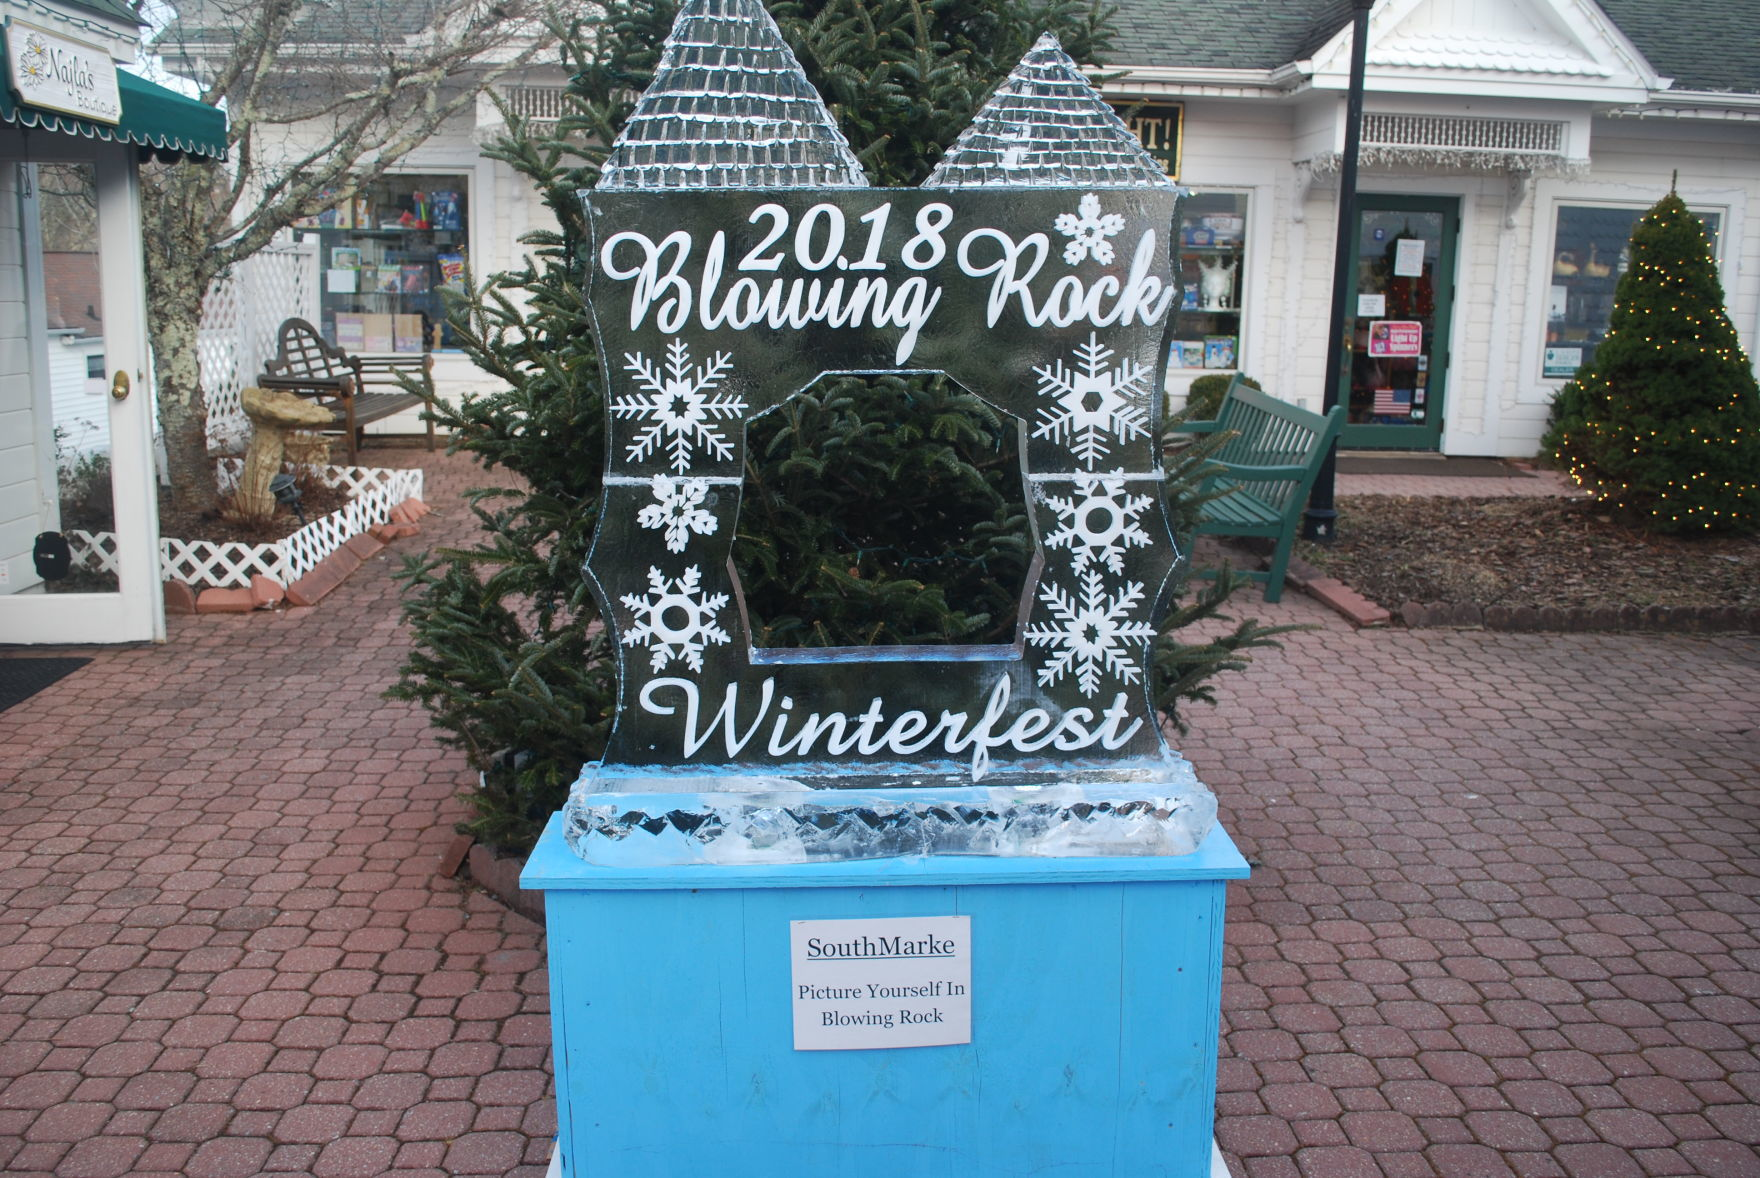 Container Haus Winterfest Winterfest 2019 Shopping Sipping And Ice Sculptures Hcnc